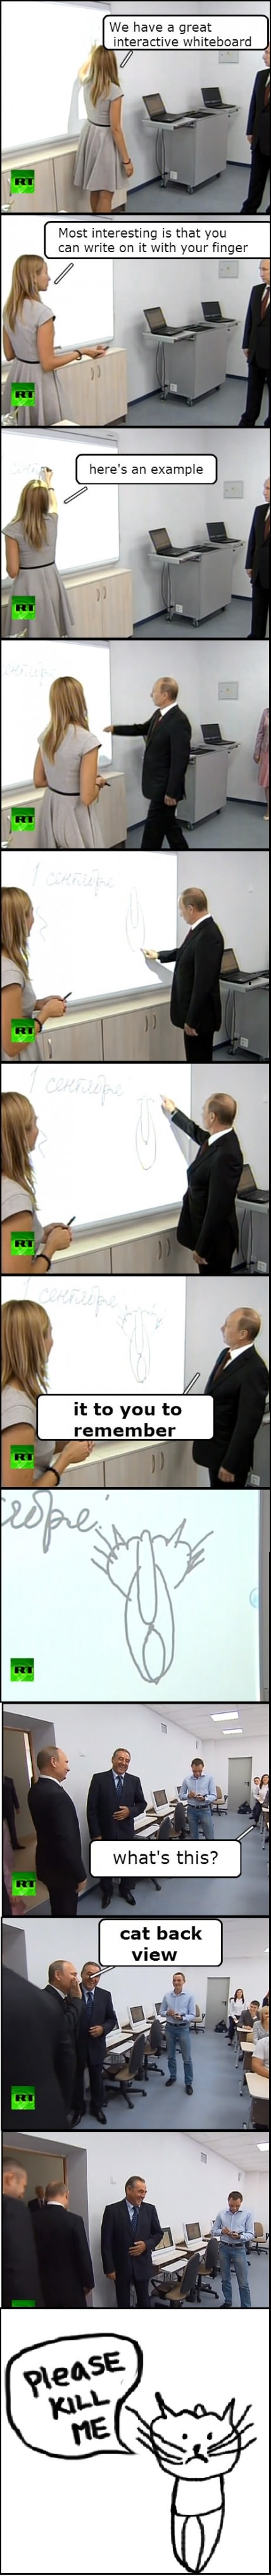 funny-pictures-putin-cat-back-view